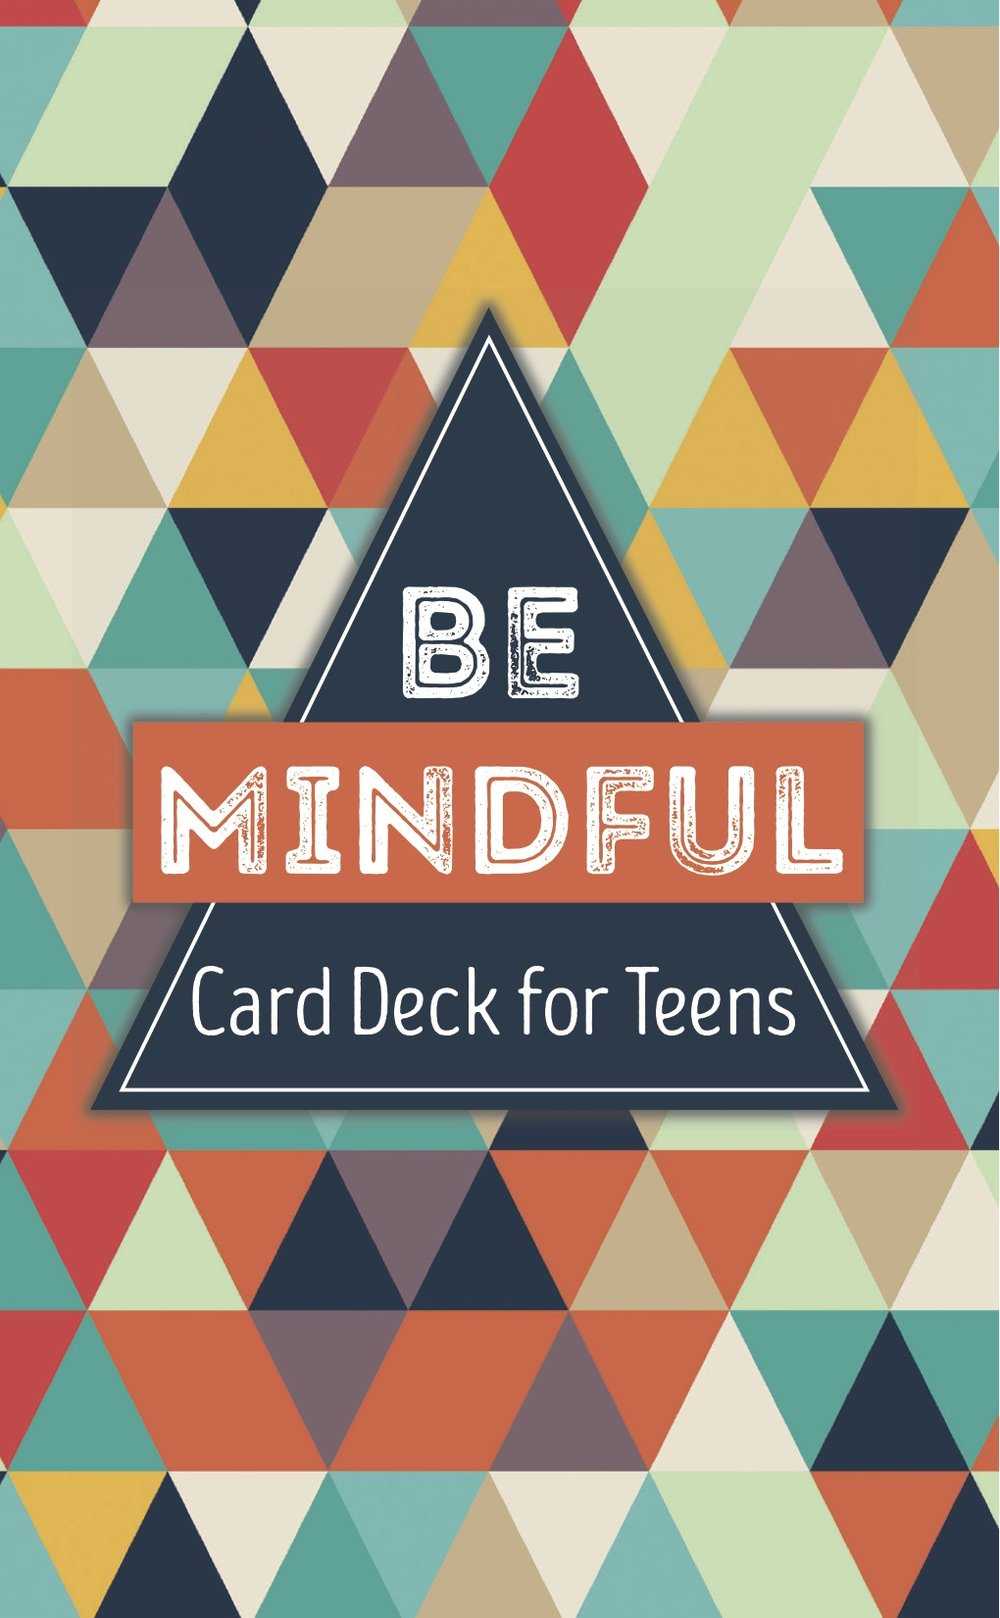 be_mindful_card_deck_for_teens.jpg